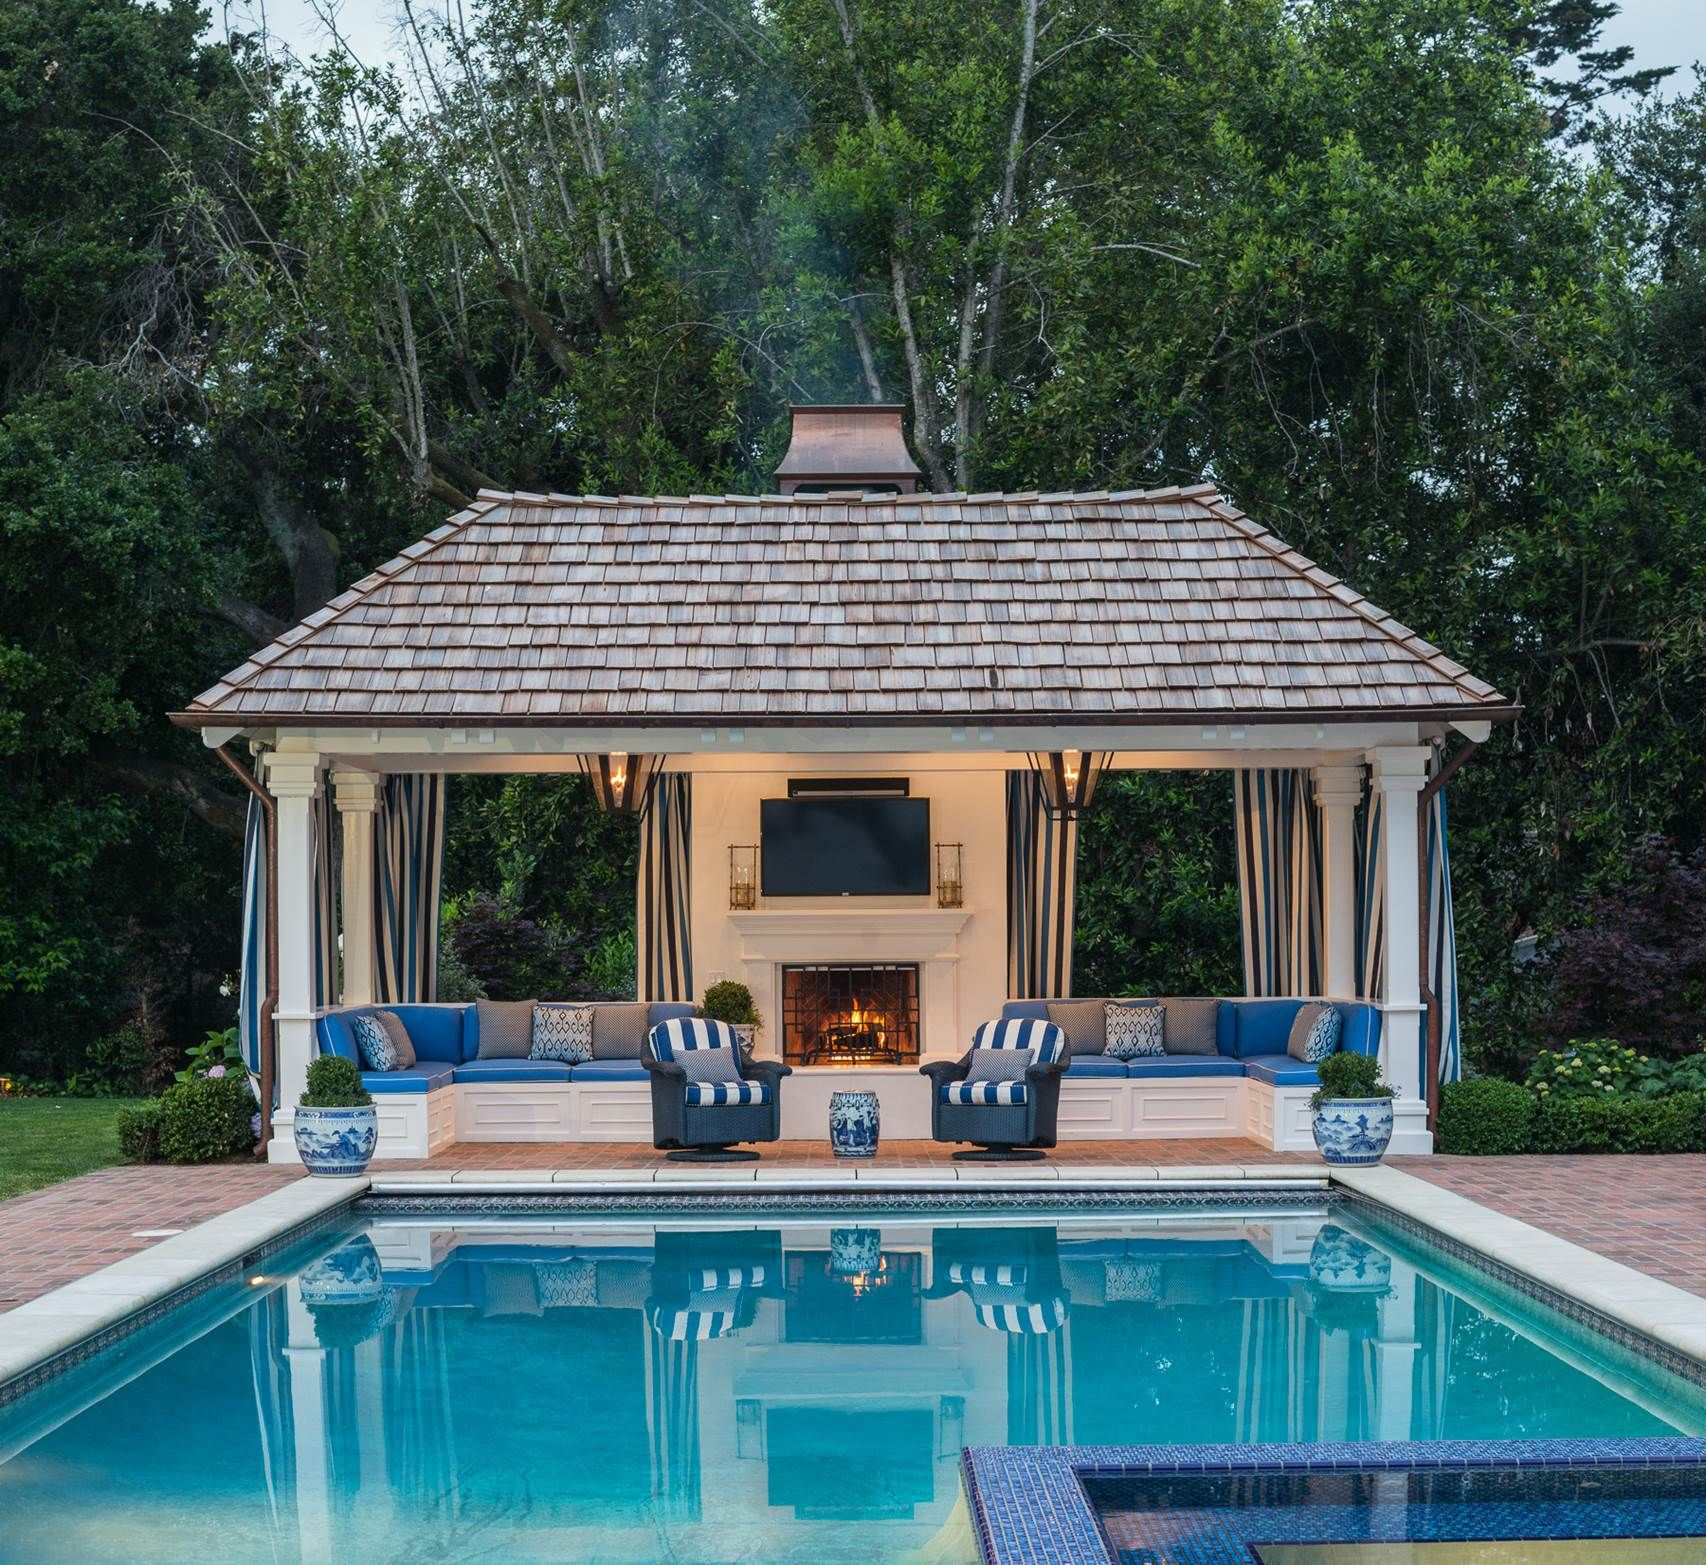 Farmhouse Backyard With Pool Pin By Amy Underwood On Outdoor Spaces And Pools Pool